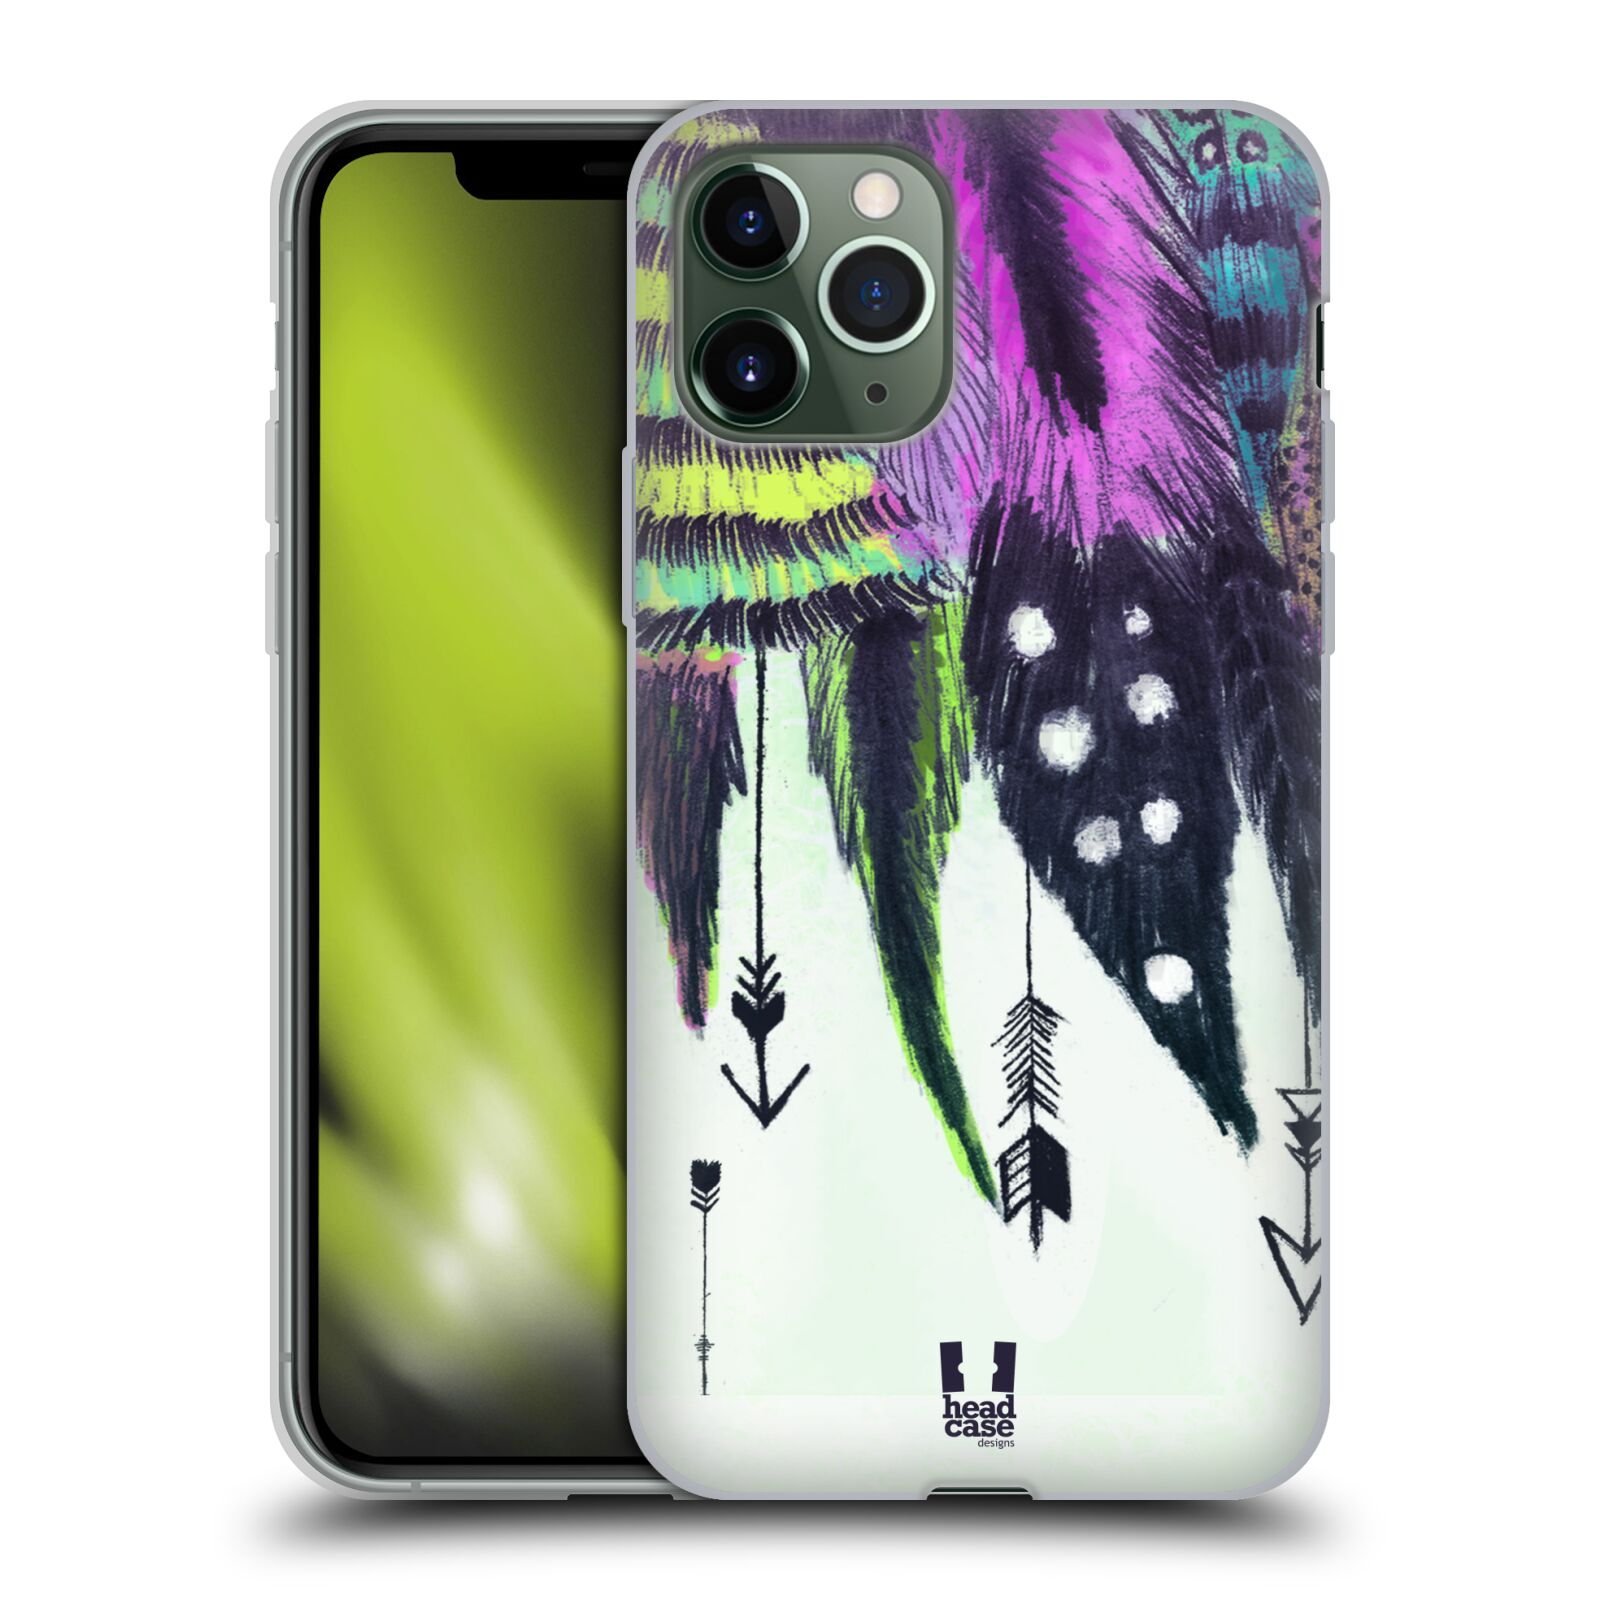 victoria krytu na iphone xr | Silikonové pouzdro na mobil Apple iPhone 11 Pro - Head Case - PÍRKA ROMANTIC